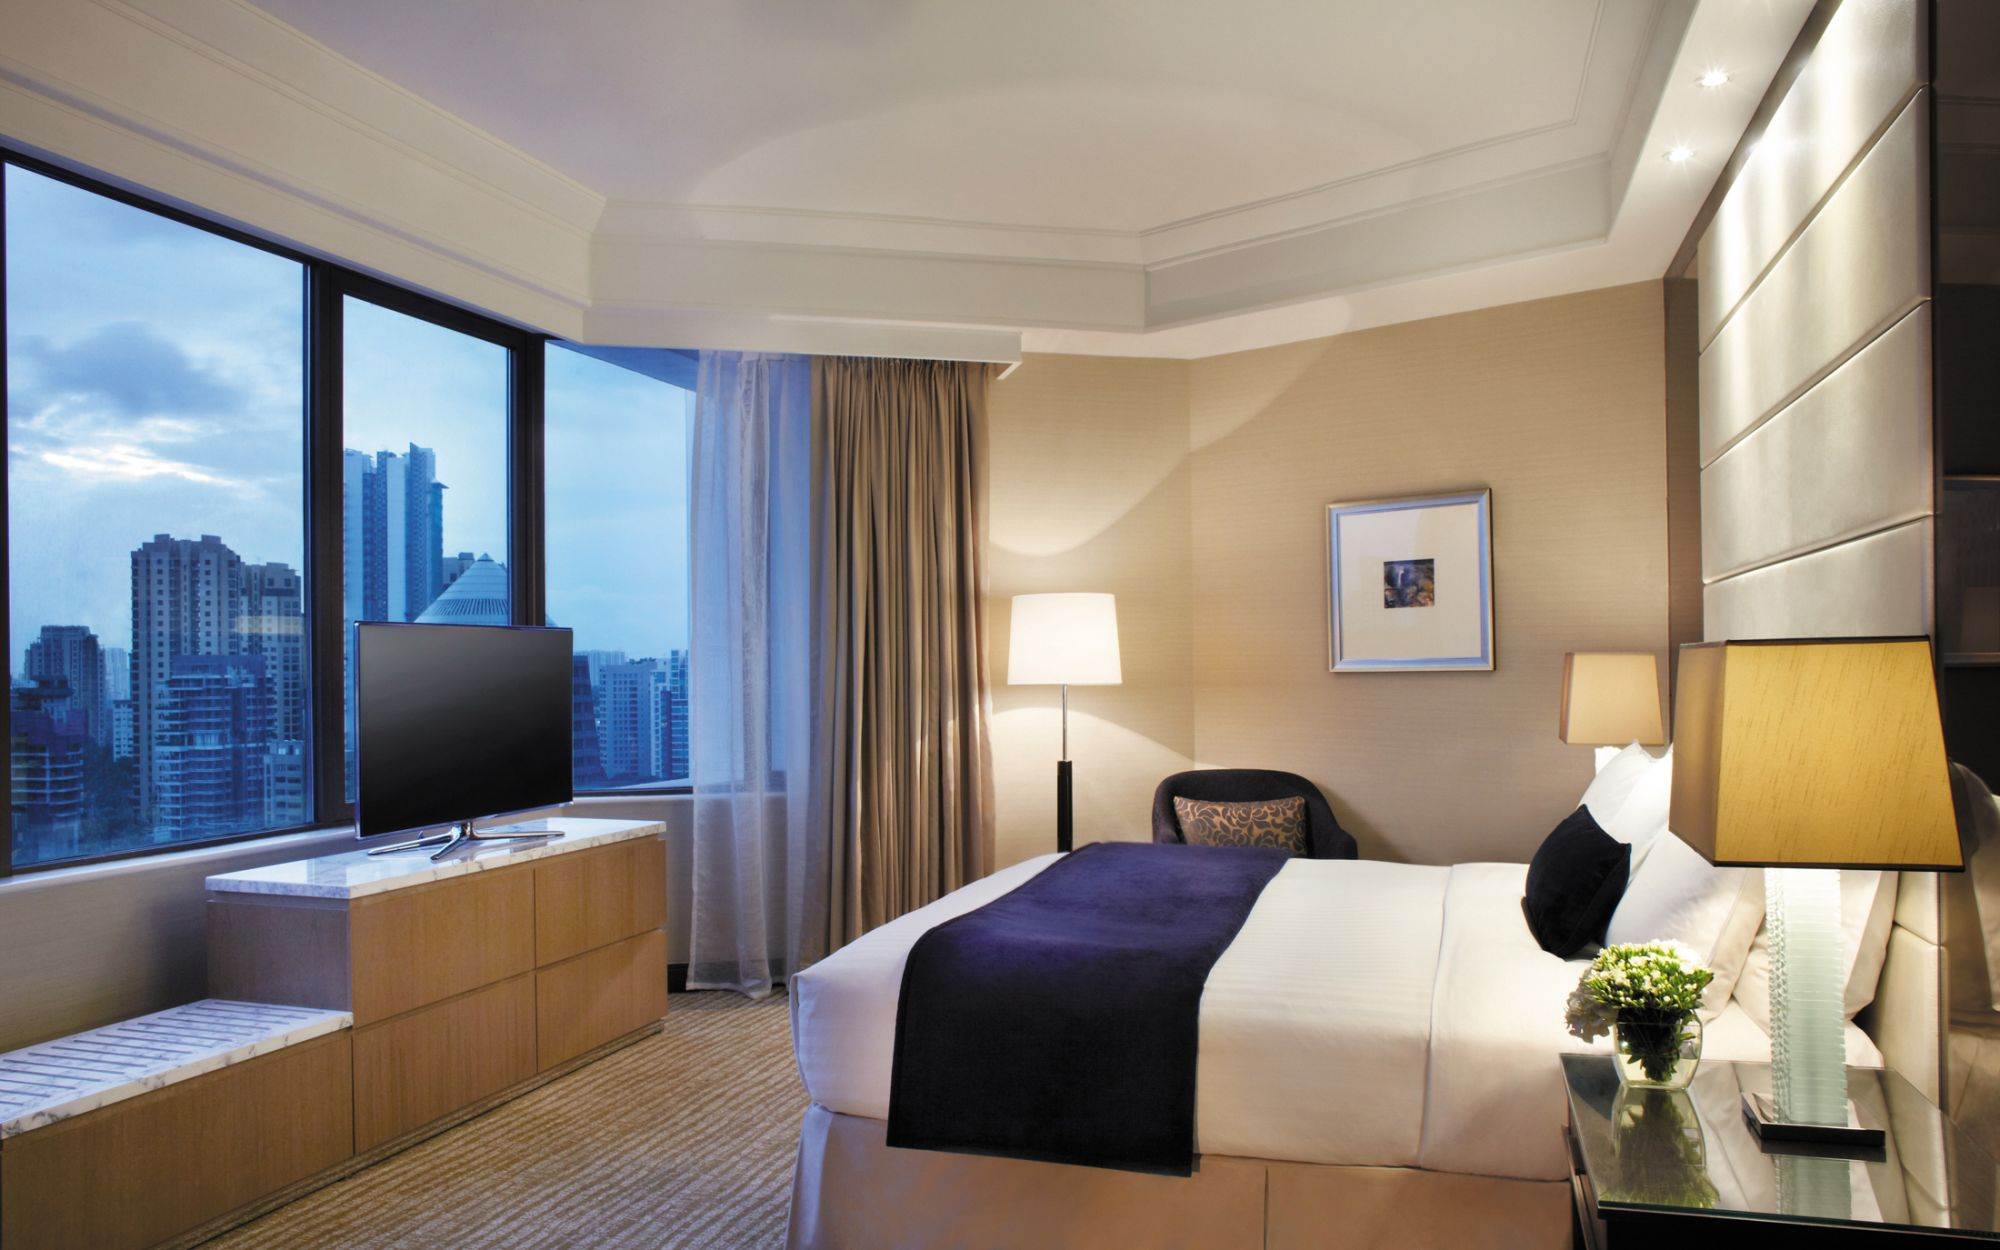 Singapore Marriott Tang Plaza: Hotel Staycation Review